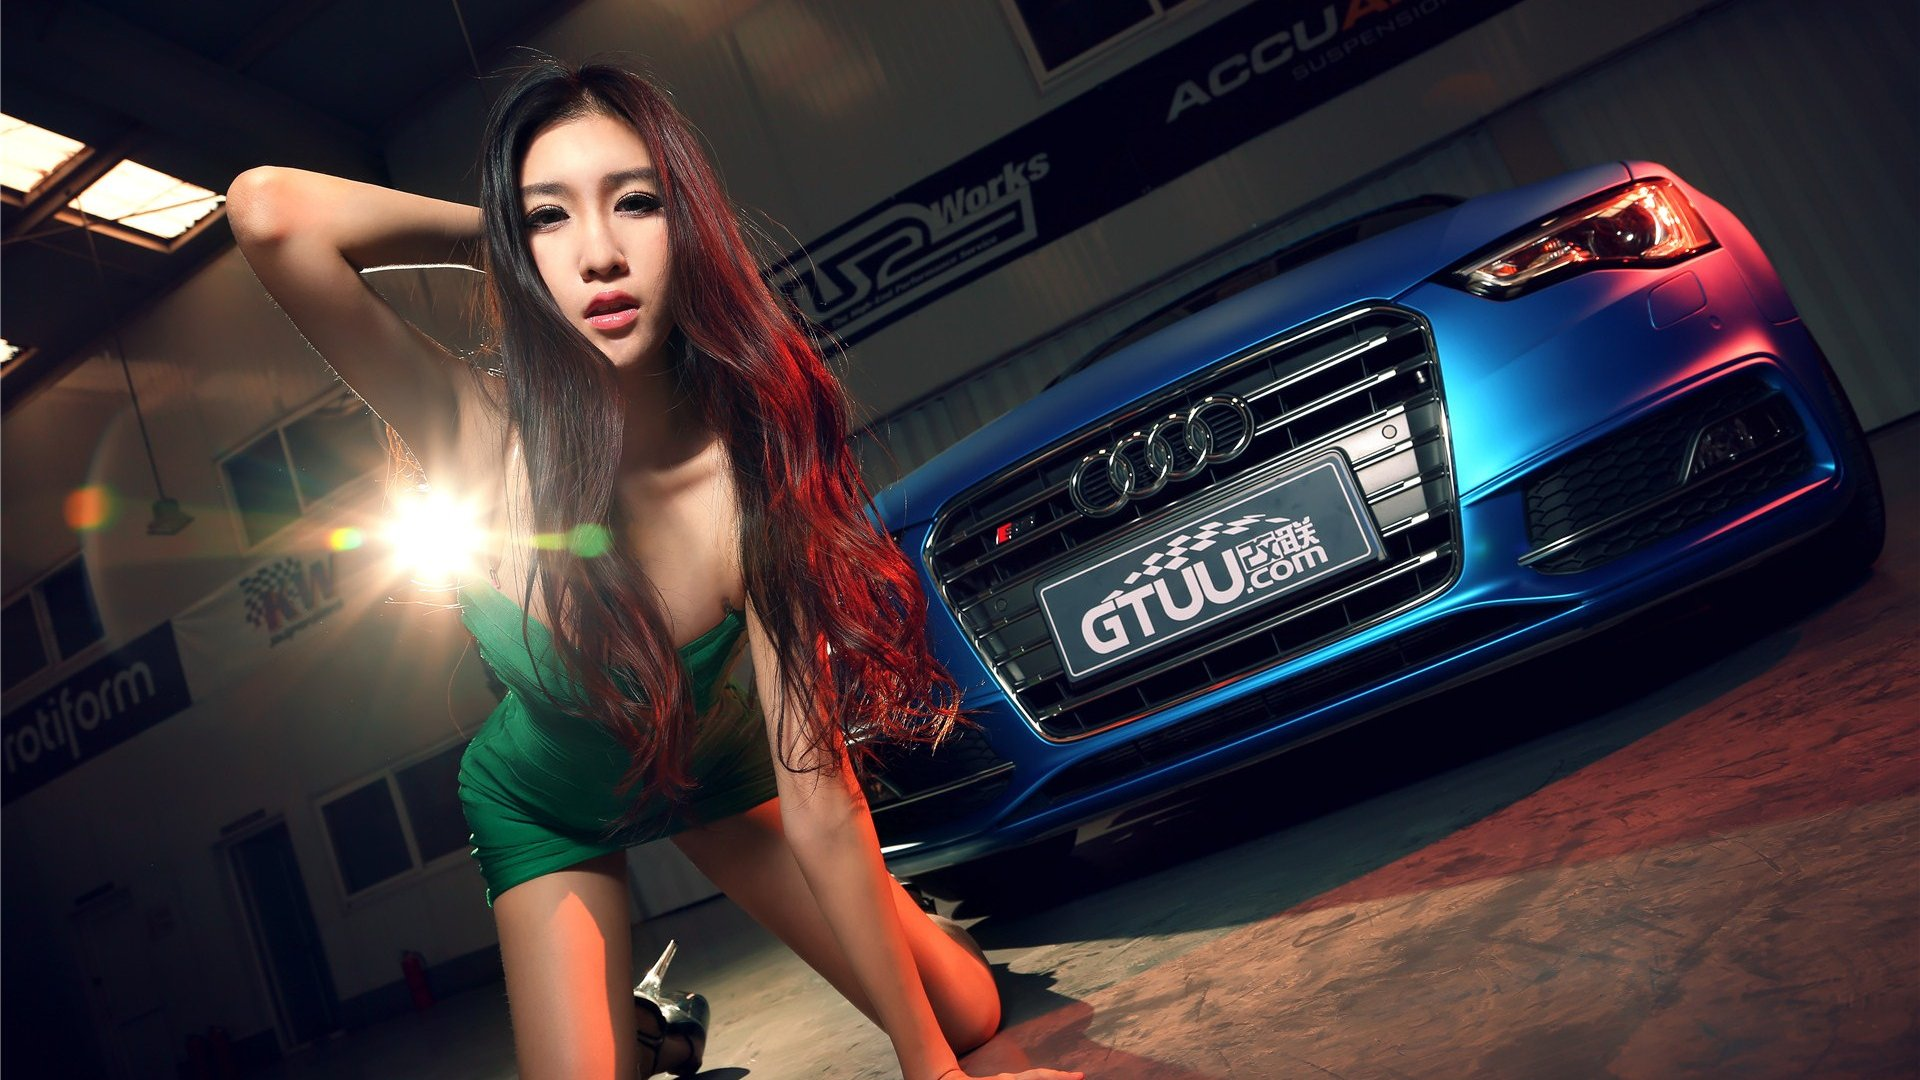 Chinese Girl Painting Wallpaper Asian Girl Bule Showgirl Sexy Model Car Audi